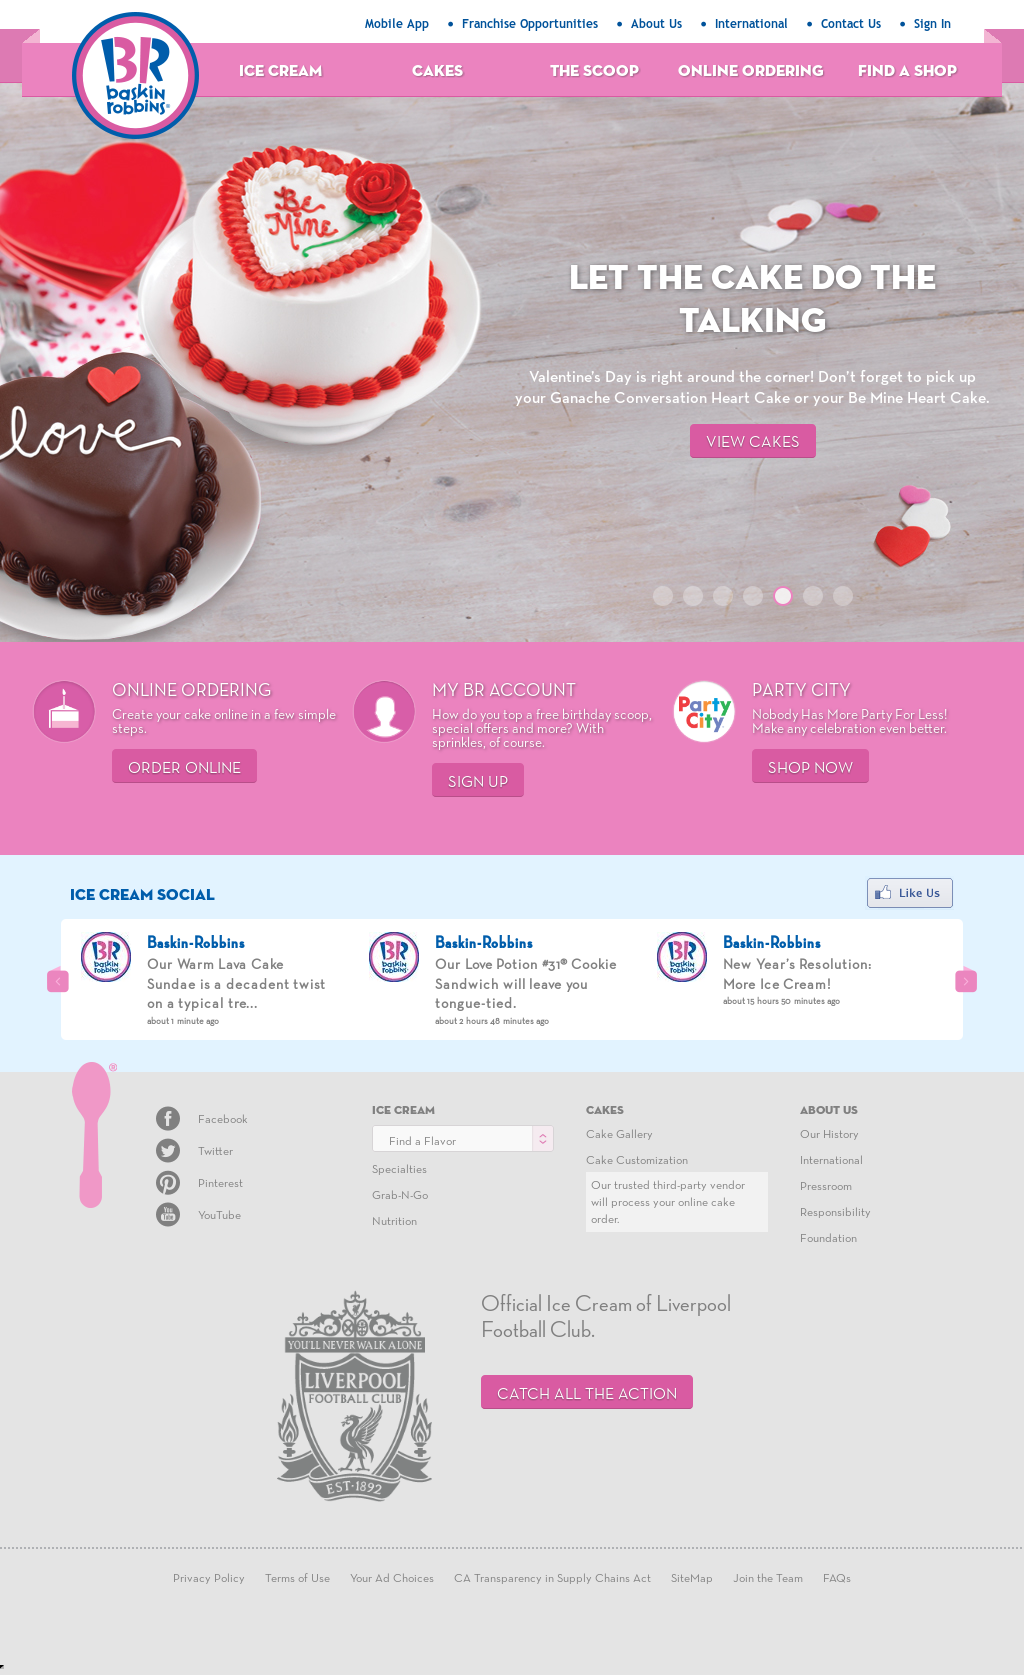 BaskinRobbins Competitors, Revenue and Employees - Owler